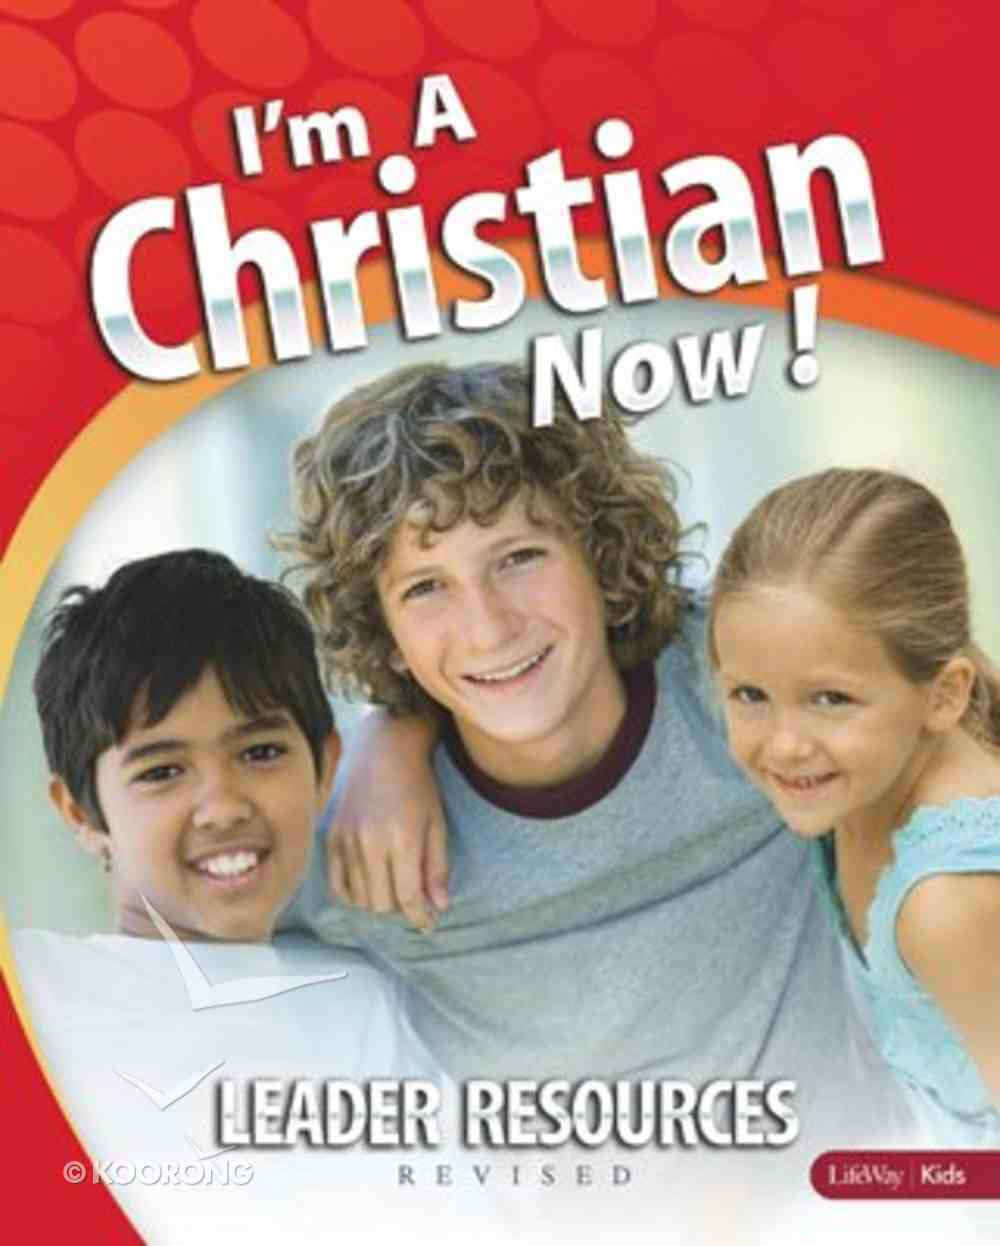 I'm a Christian Now (Leader Resources Kit) Pack